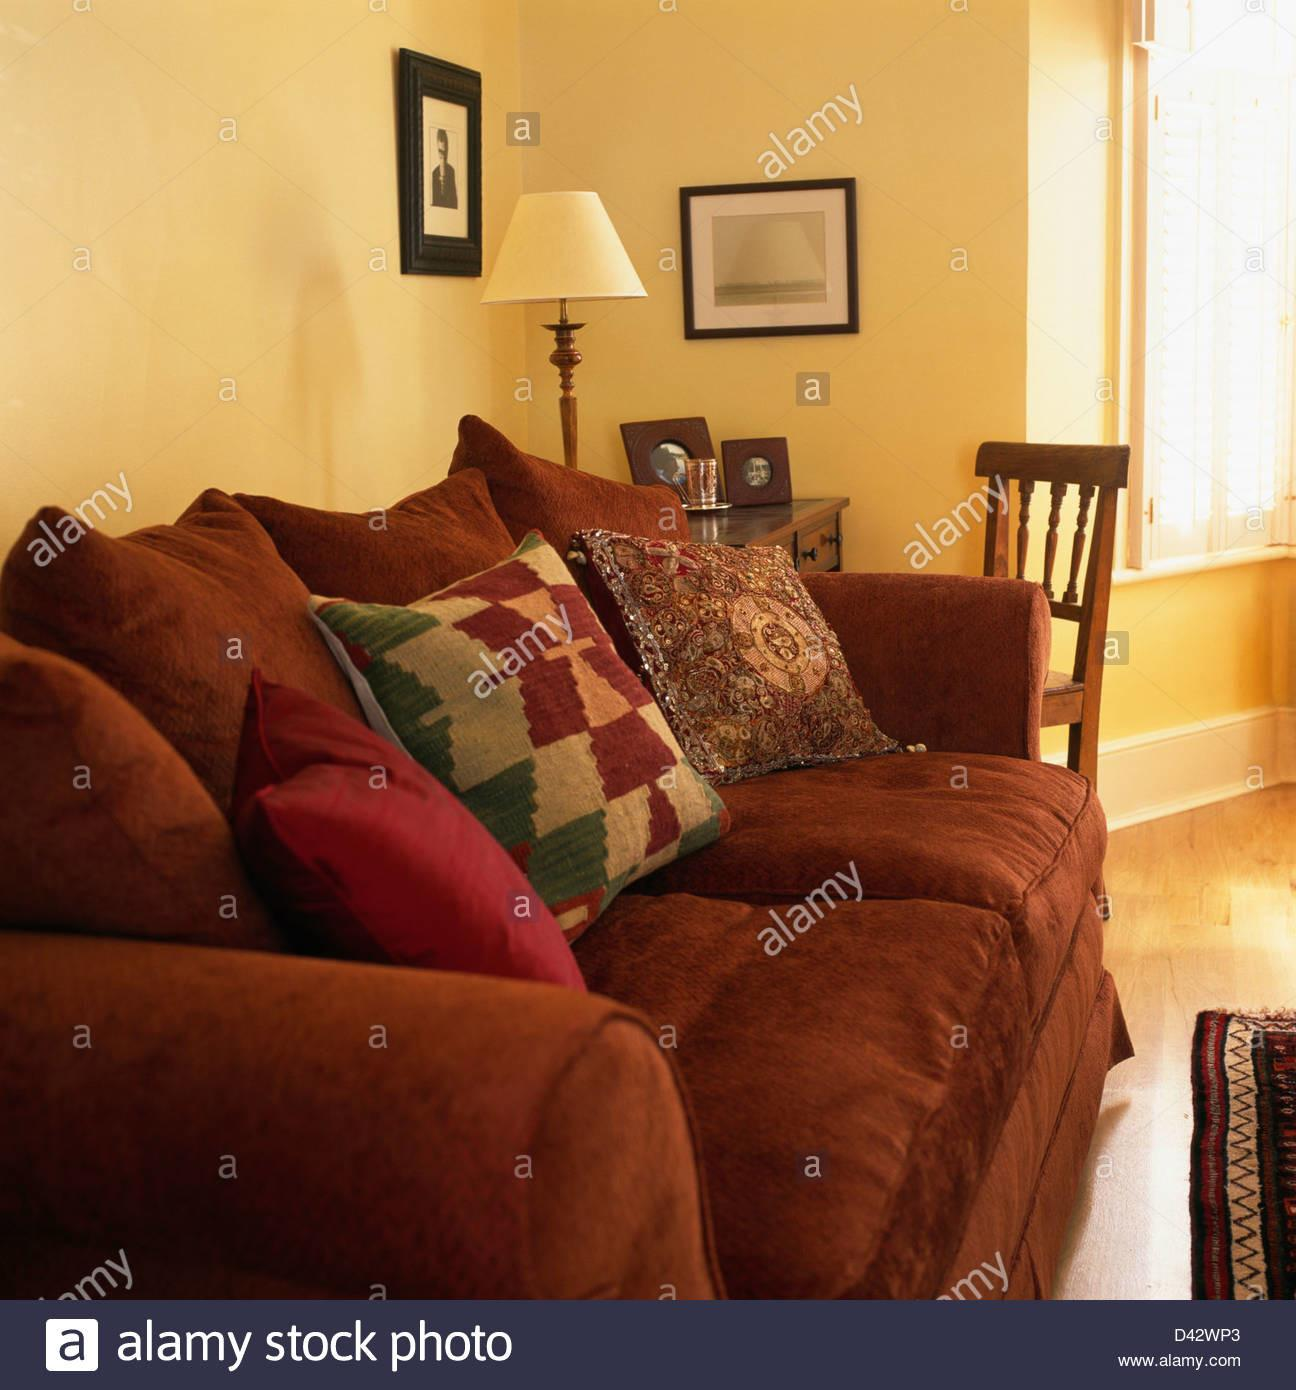 Patterned Cushions Rust Colored Sofa Traditional